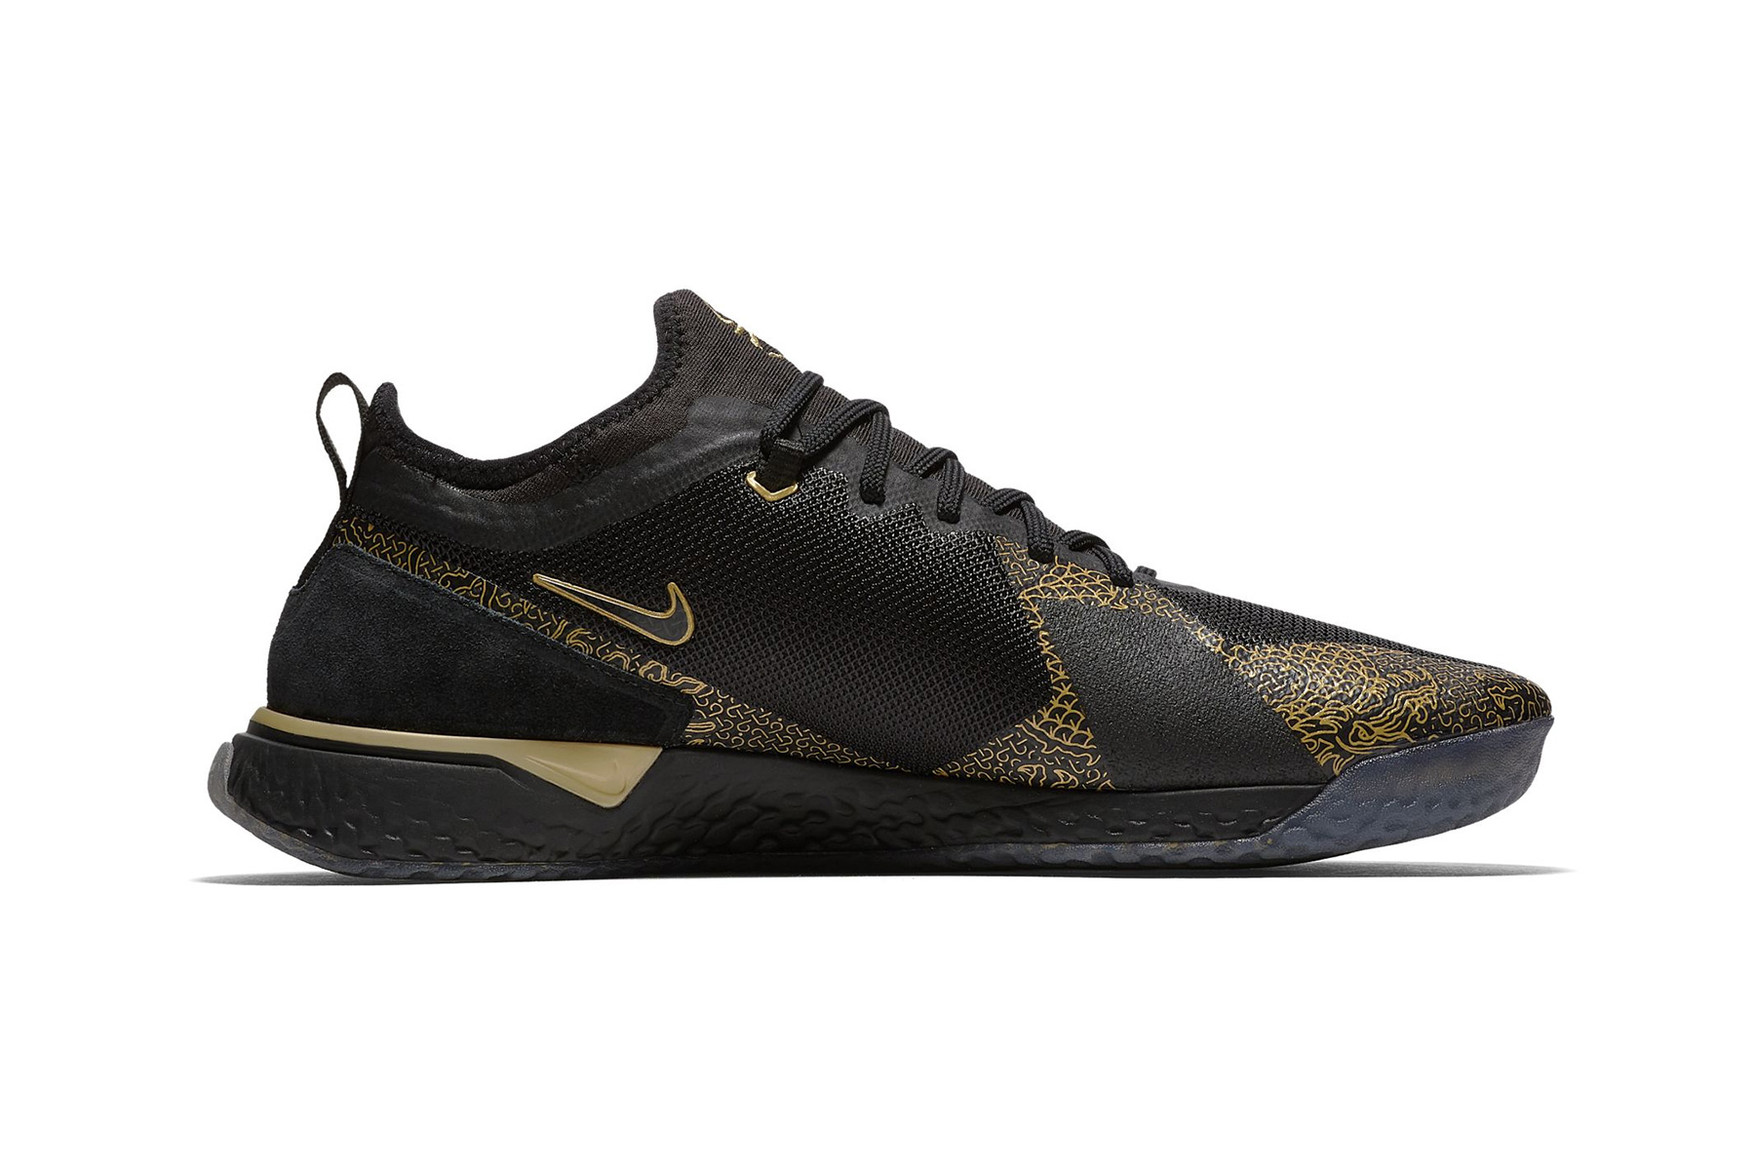 christiano-ronaldo-nike-fc-cr7-black-metallic-gold-03